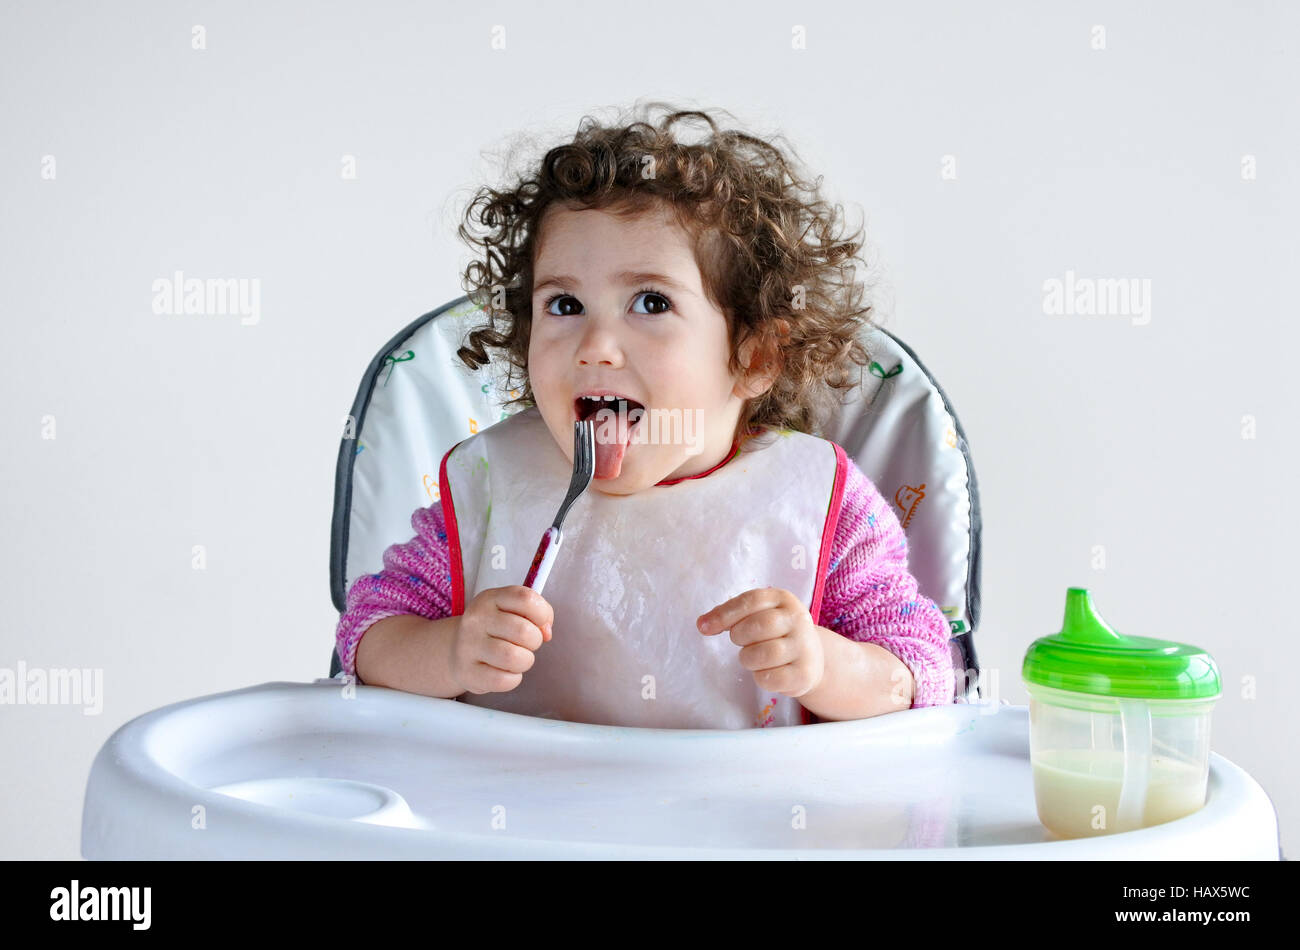 Little toddler child (girl age 2-3) waits for meal time. Childhood and children health care concept. Real people - Stock Image